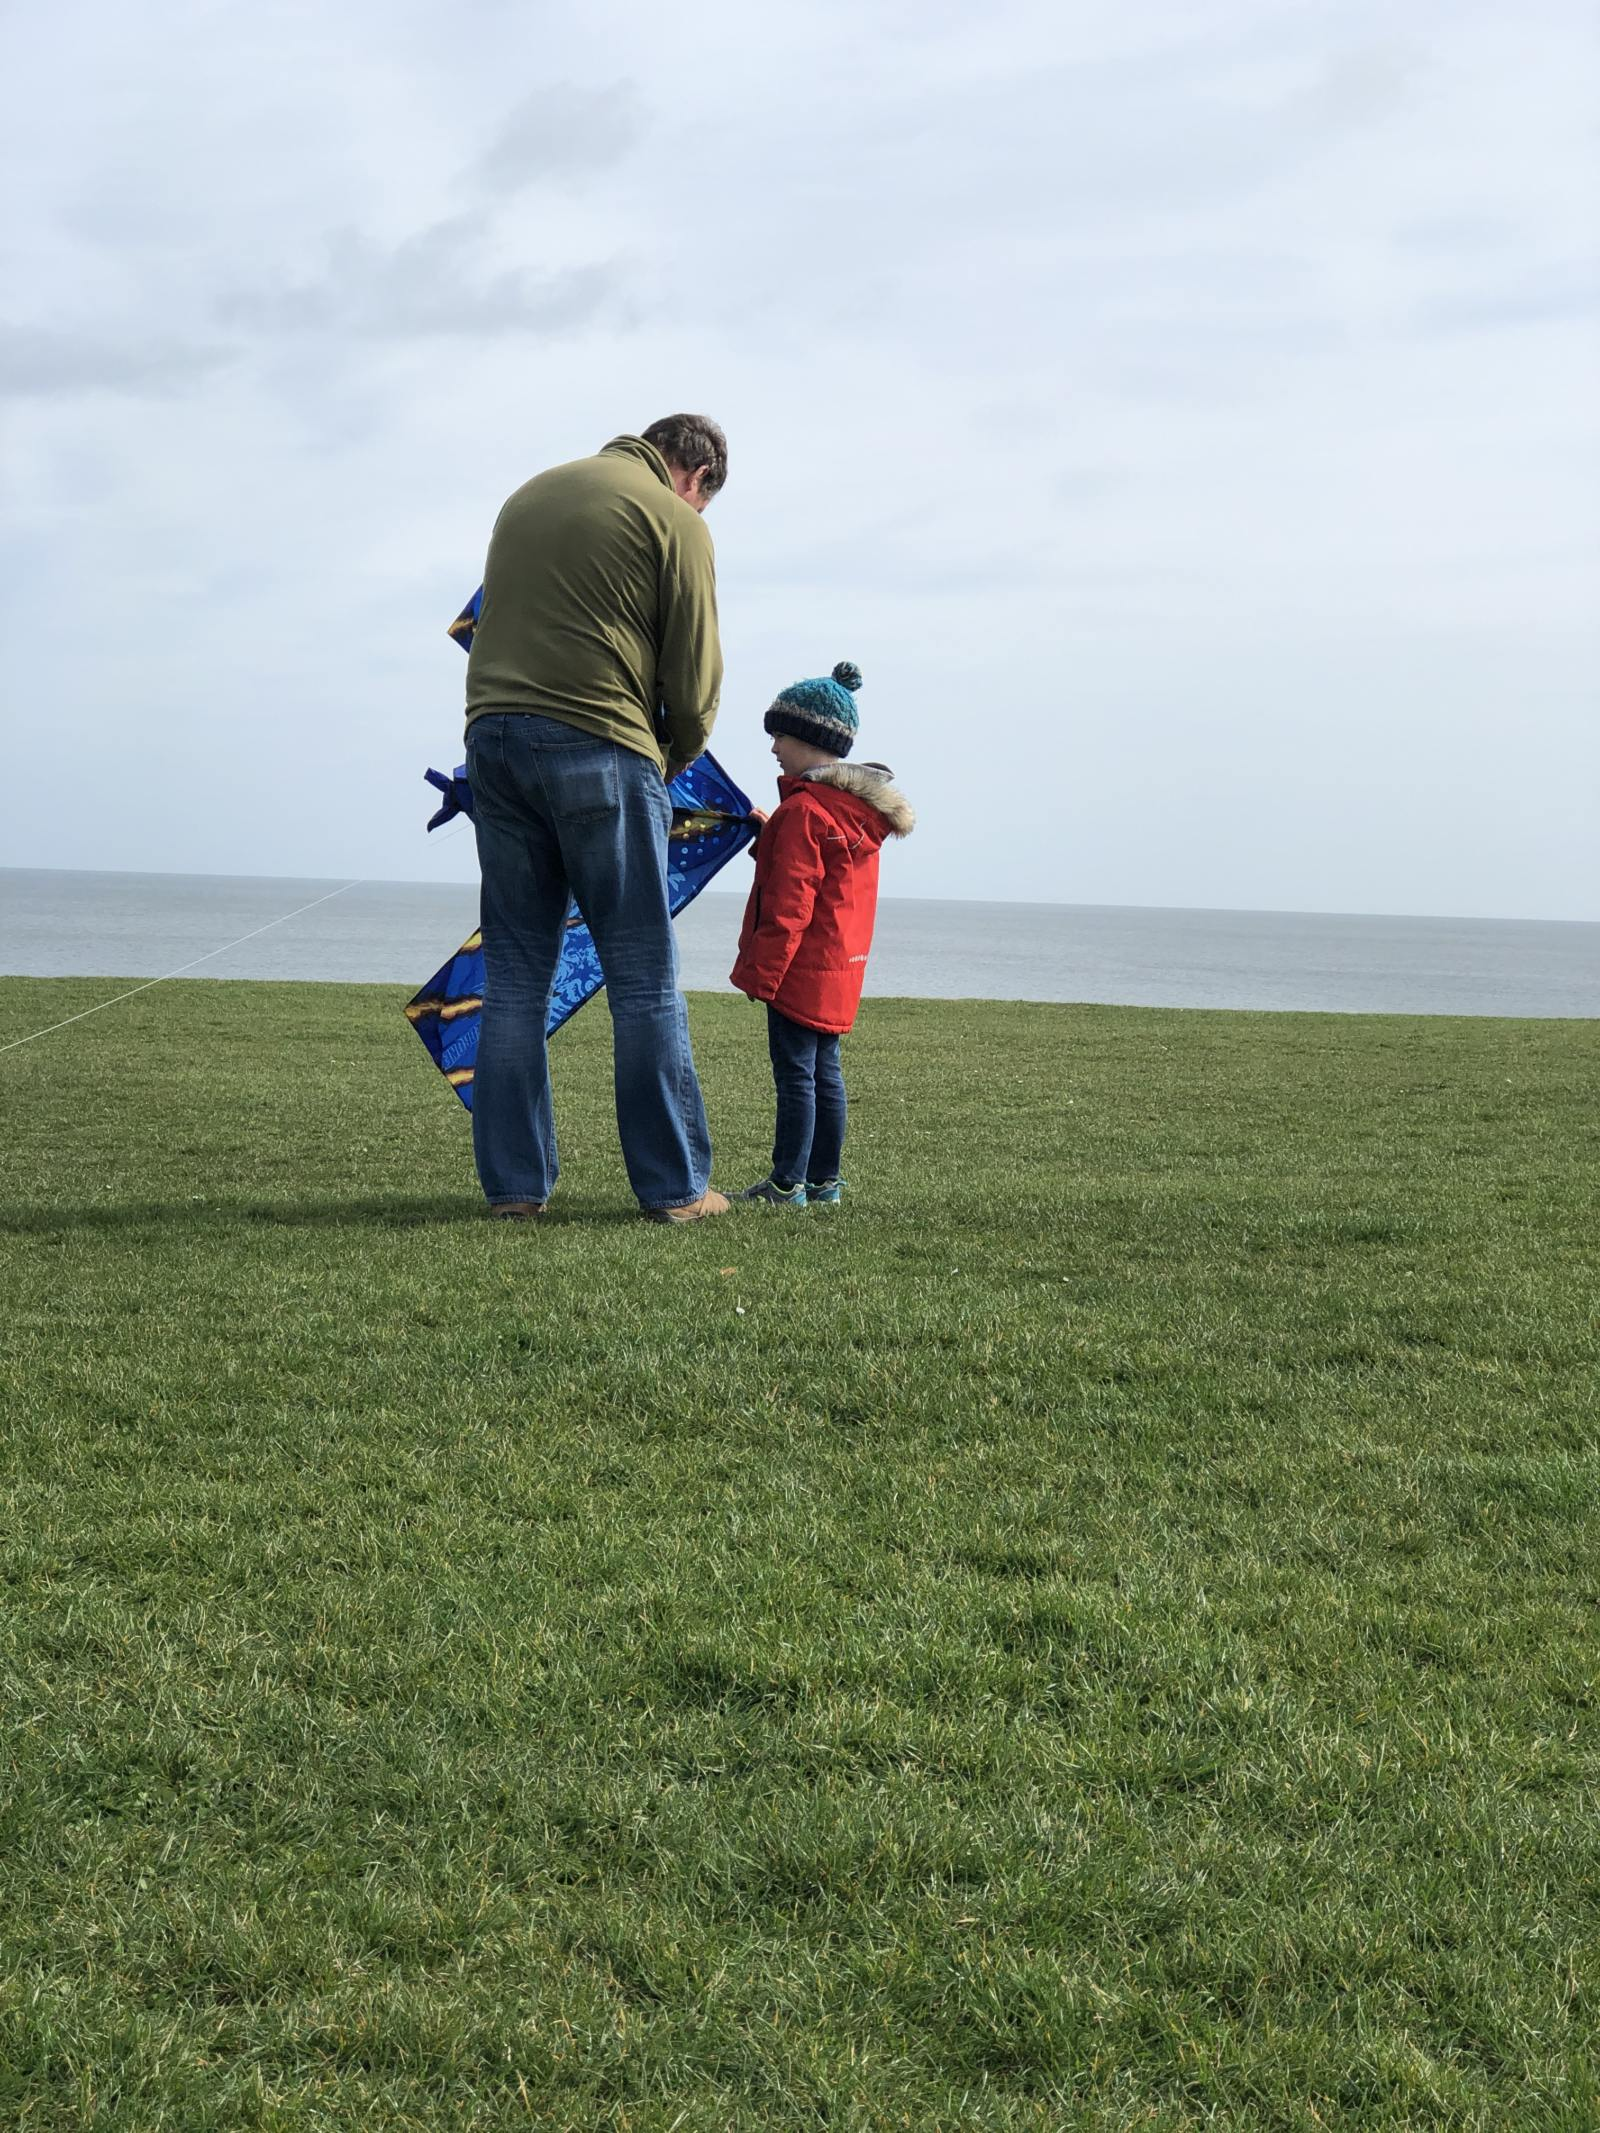 flying a kite is a fun activity for all the family